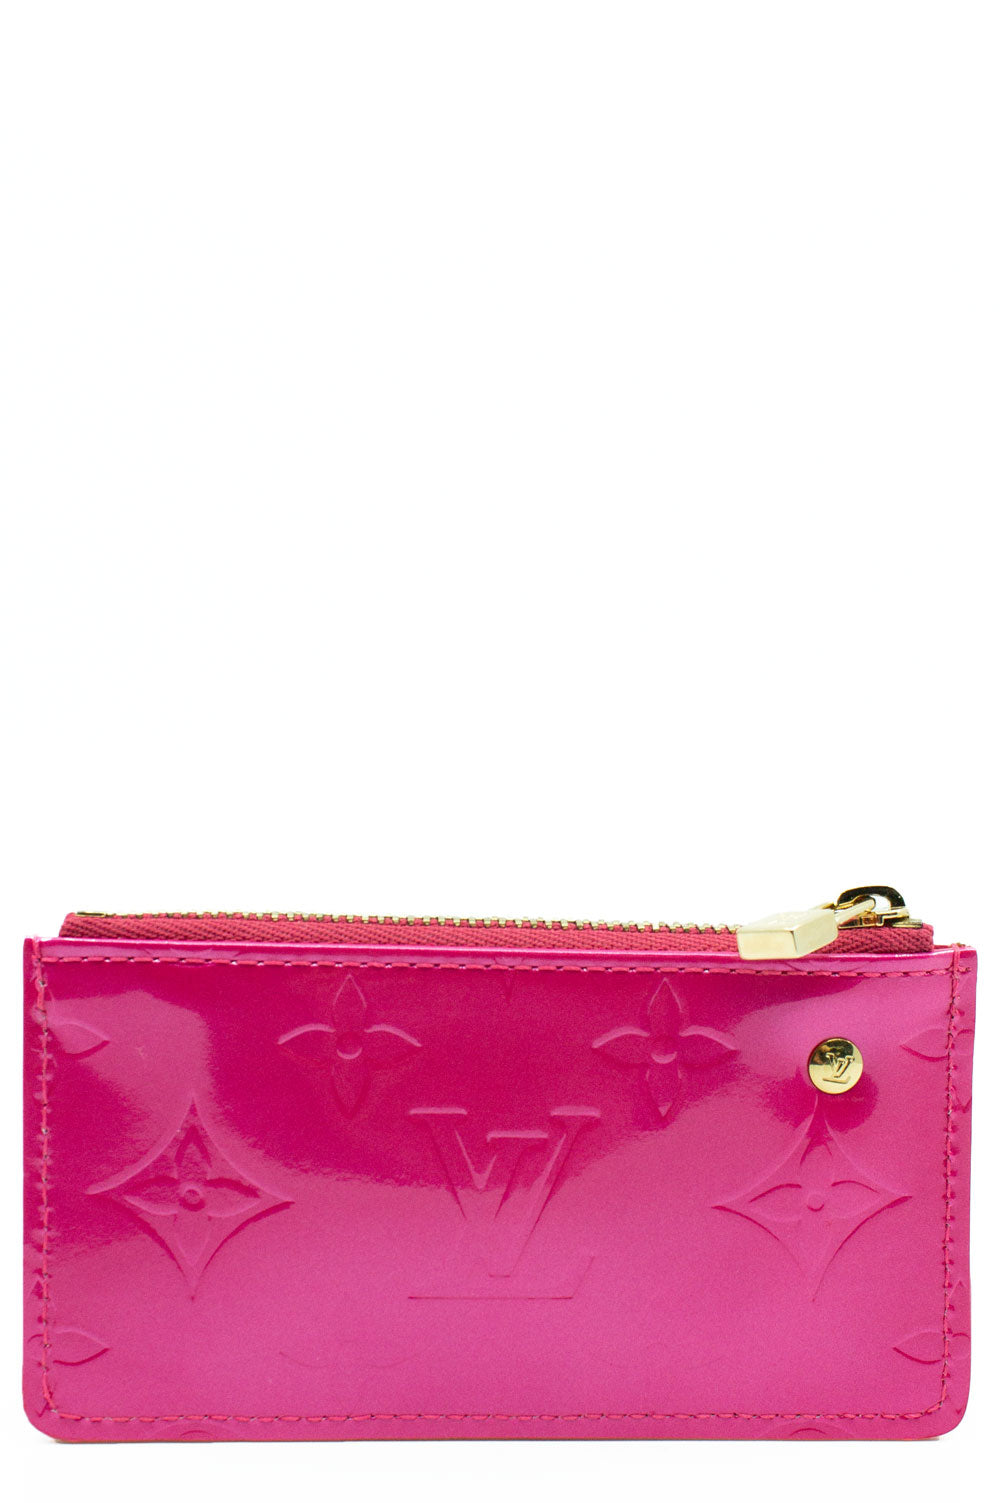 Louis Vuitton Pink Vernis Leather Key PoucheFrontalansicht